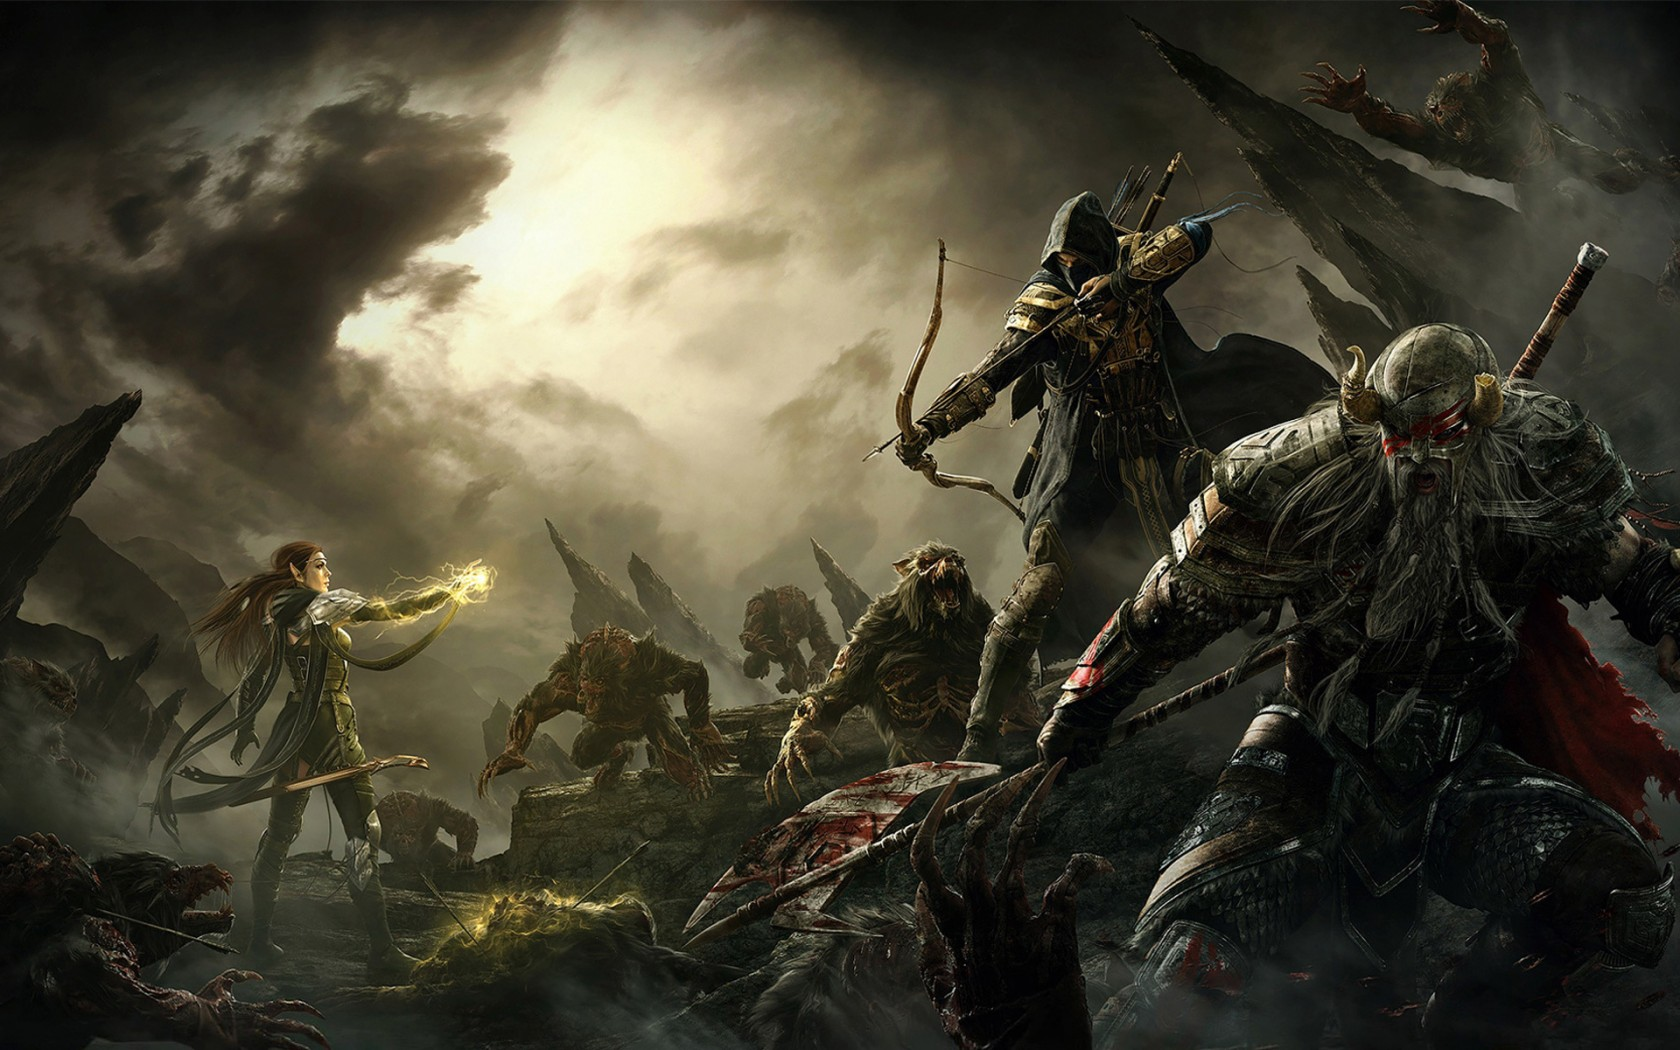 Wallpaper The Elder Scrolls Online: Battle